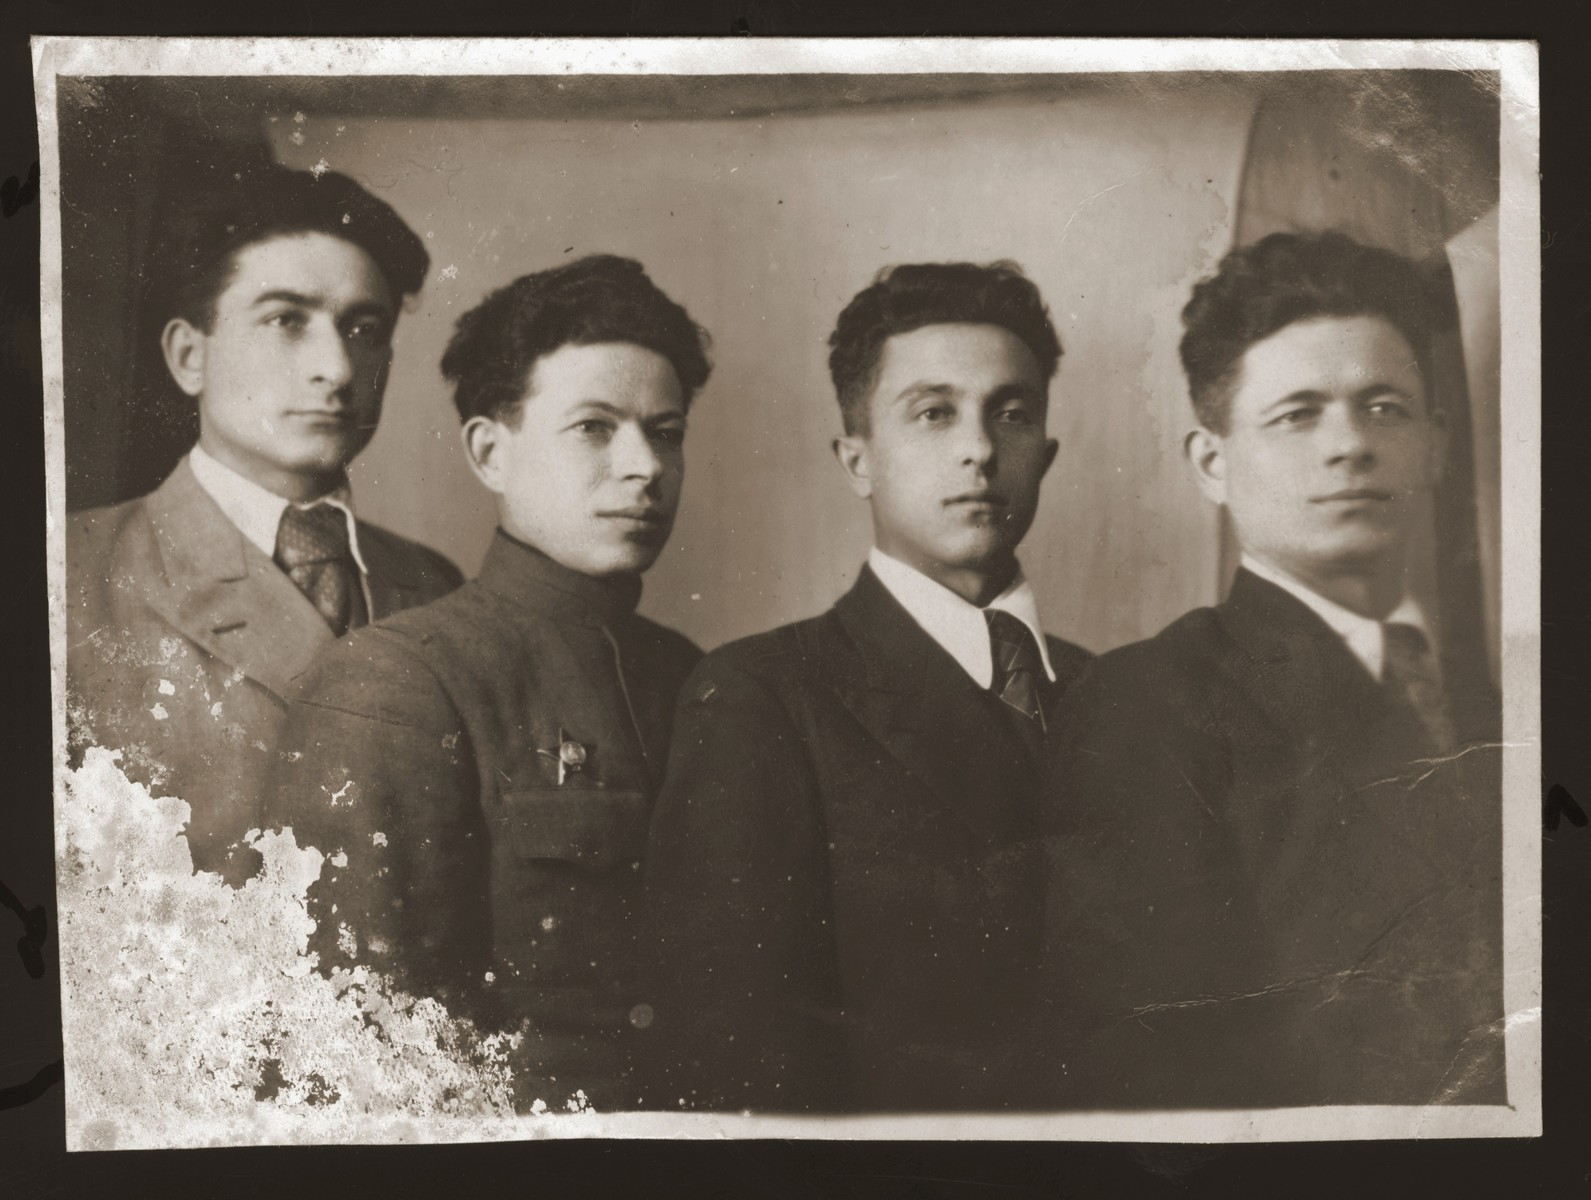 Group portrait of four young Jewish men in Gorky.  Pictured from left to right are the three Lewin brothers: Yuri, Abram and Misha.  At the right is their cousin, Jasha Kushnir.